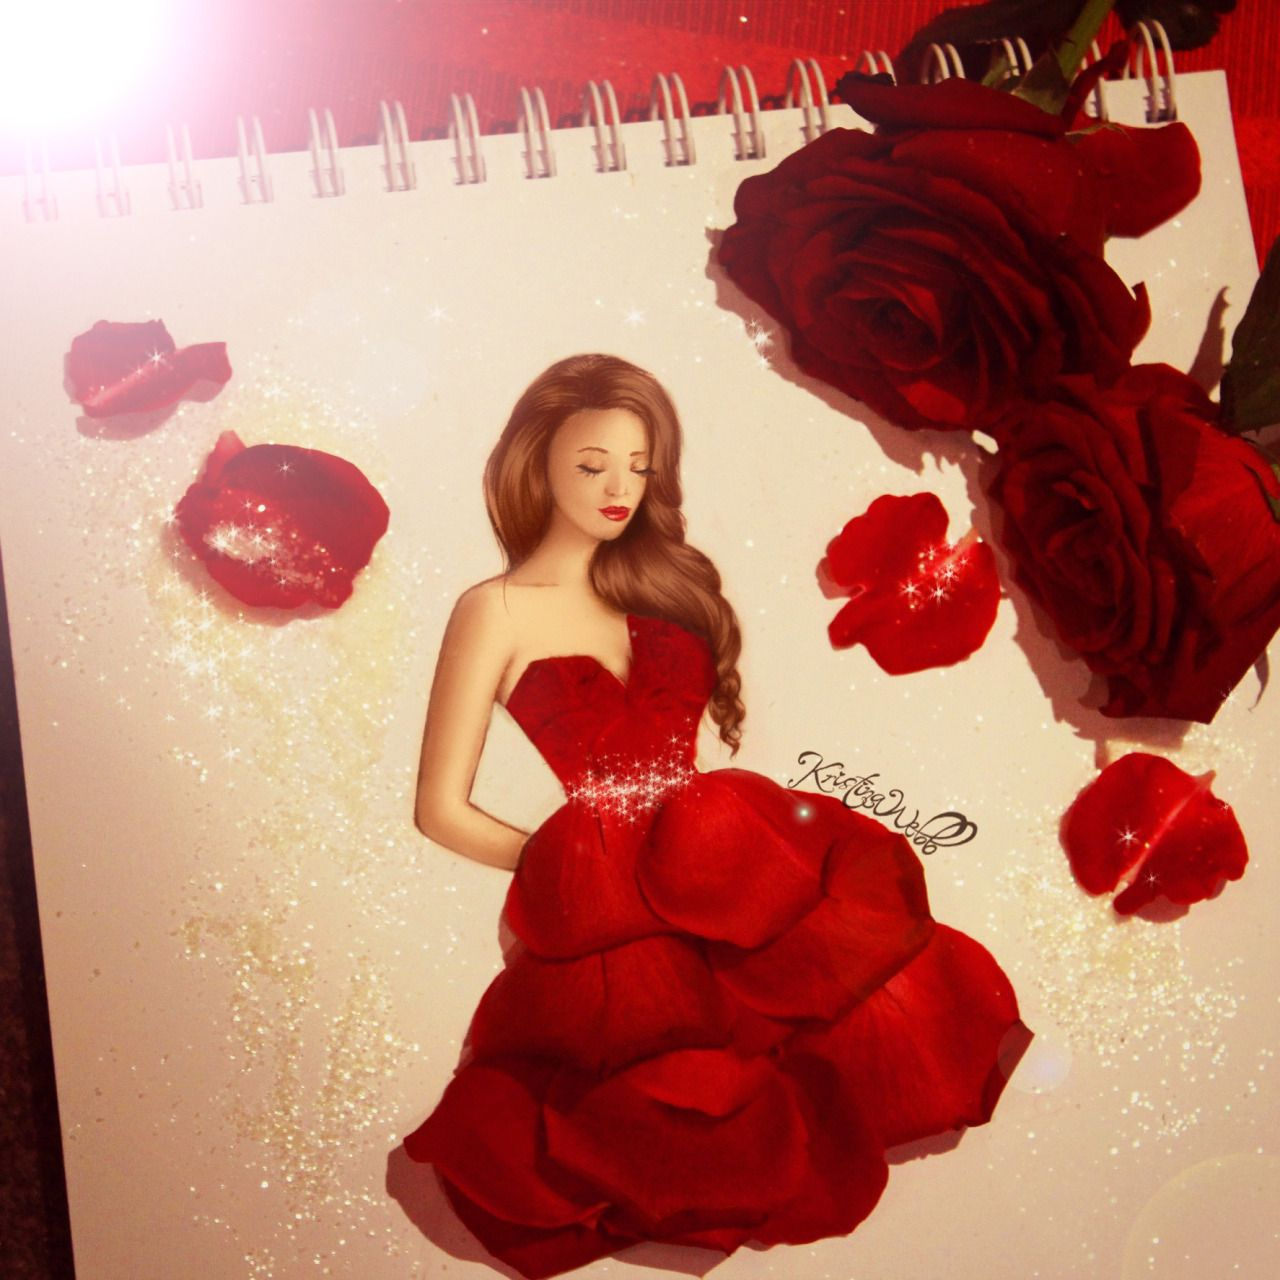 Rose Drawing With Real Rose Petals Color Pencil